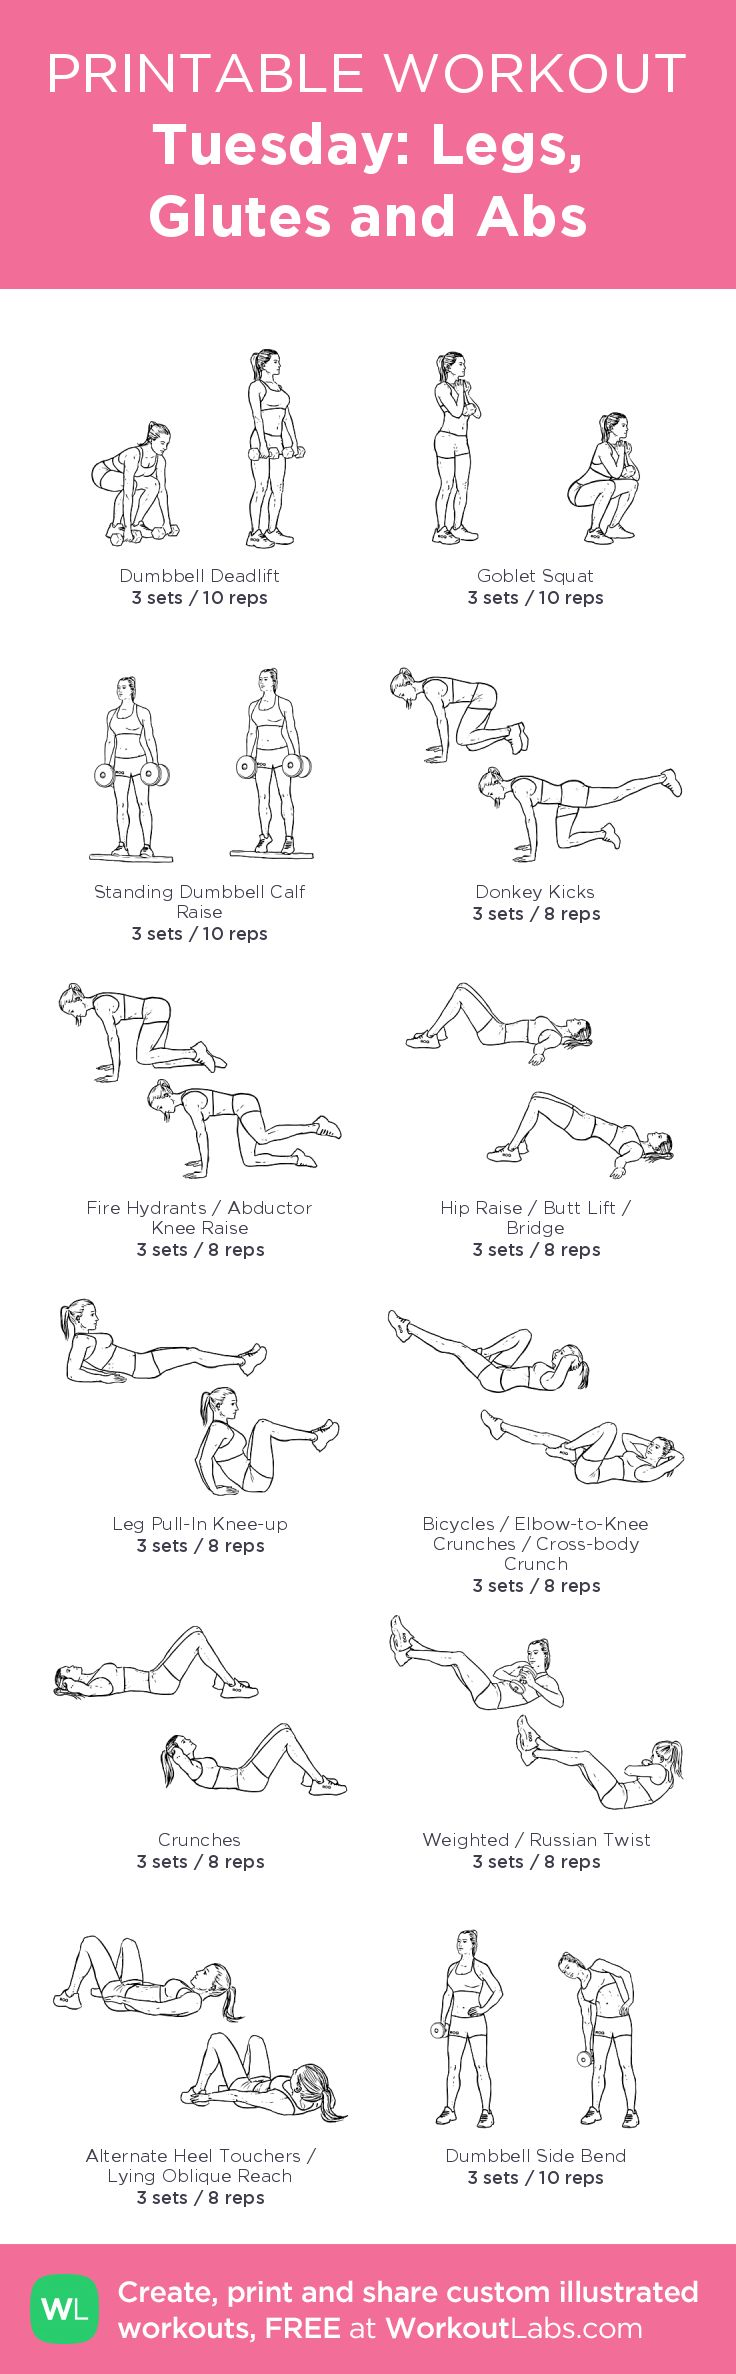 Tuesday: Legs, Glutes and Abs–my custom exercise plan created at WorkoutLabs.com • Click through to download as a printable workout PDF #customworkout